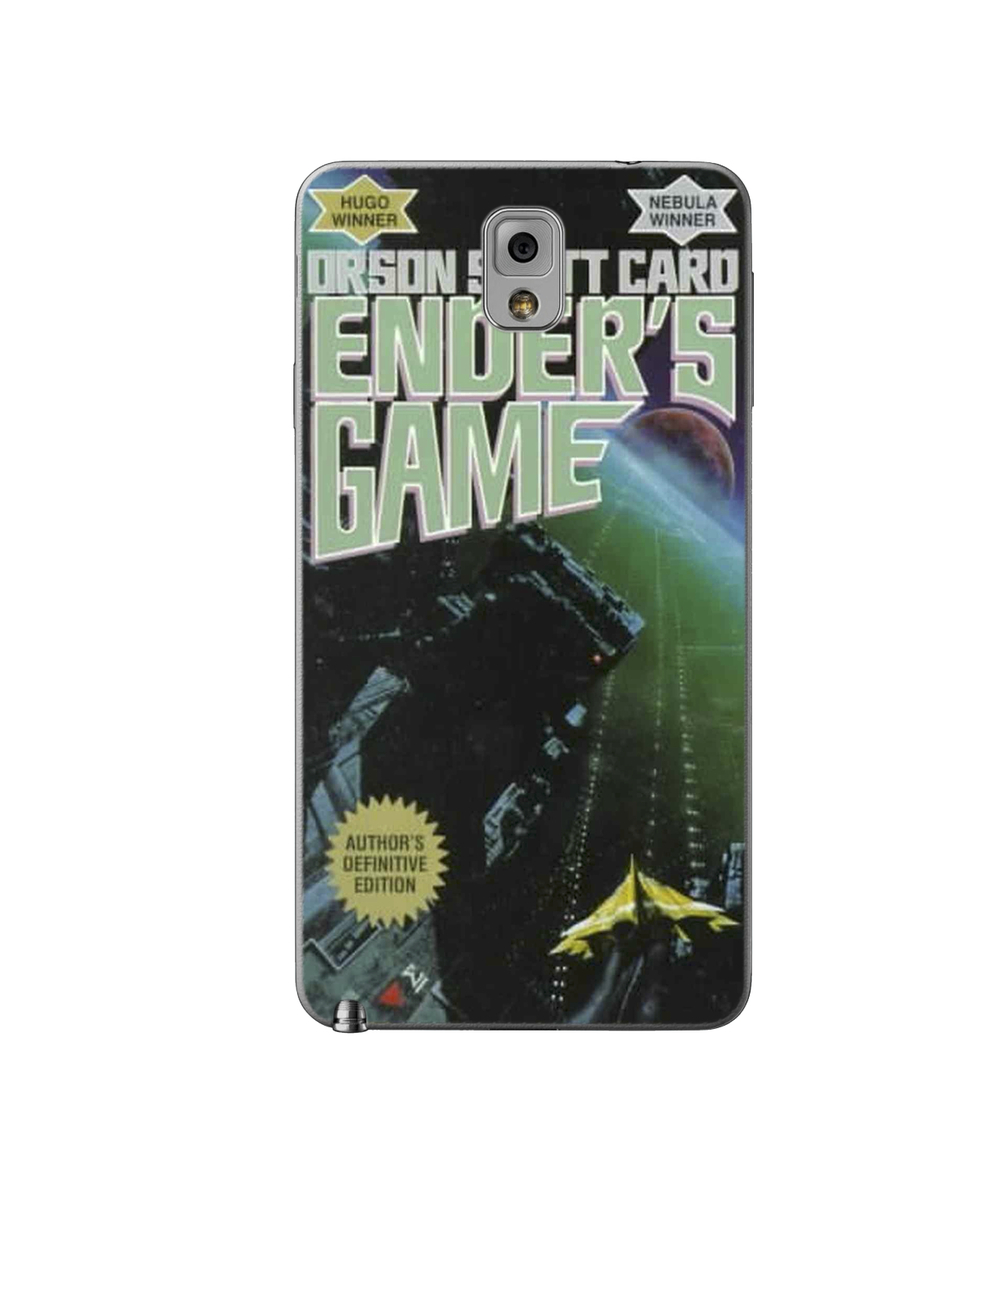 Ender's Game Cover Art